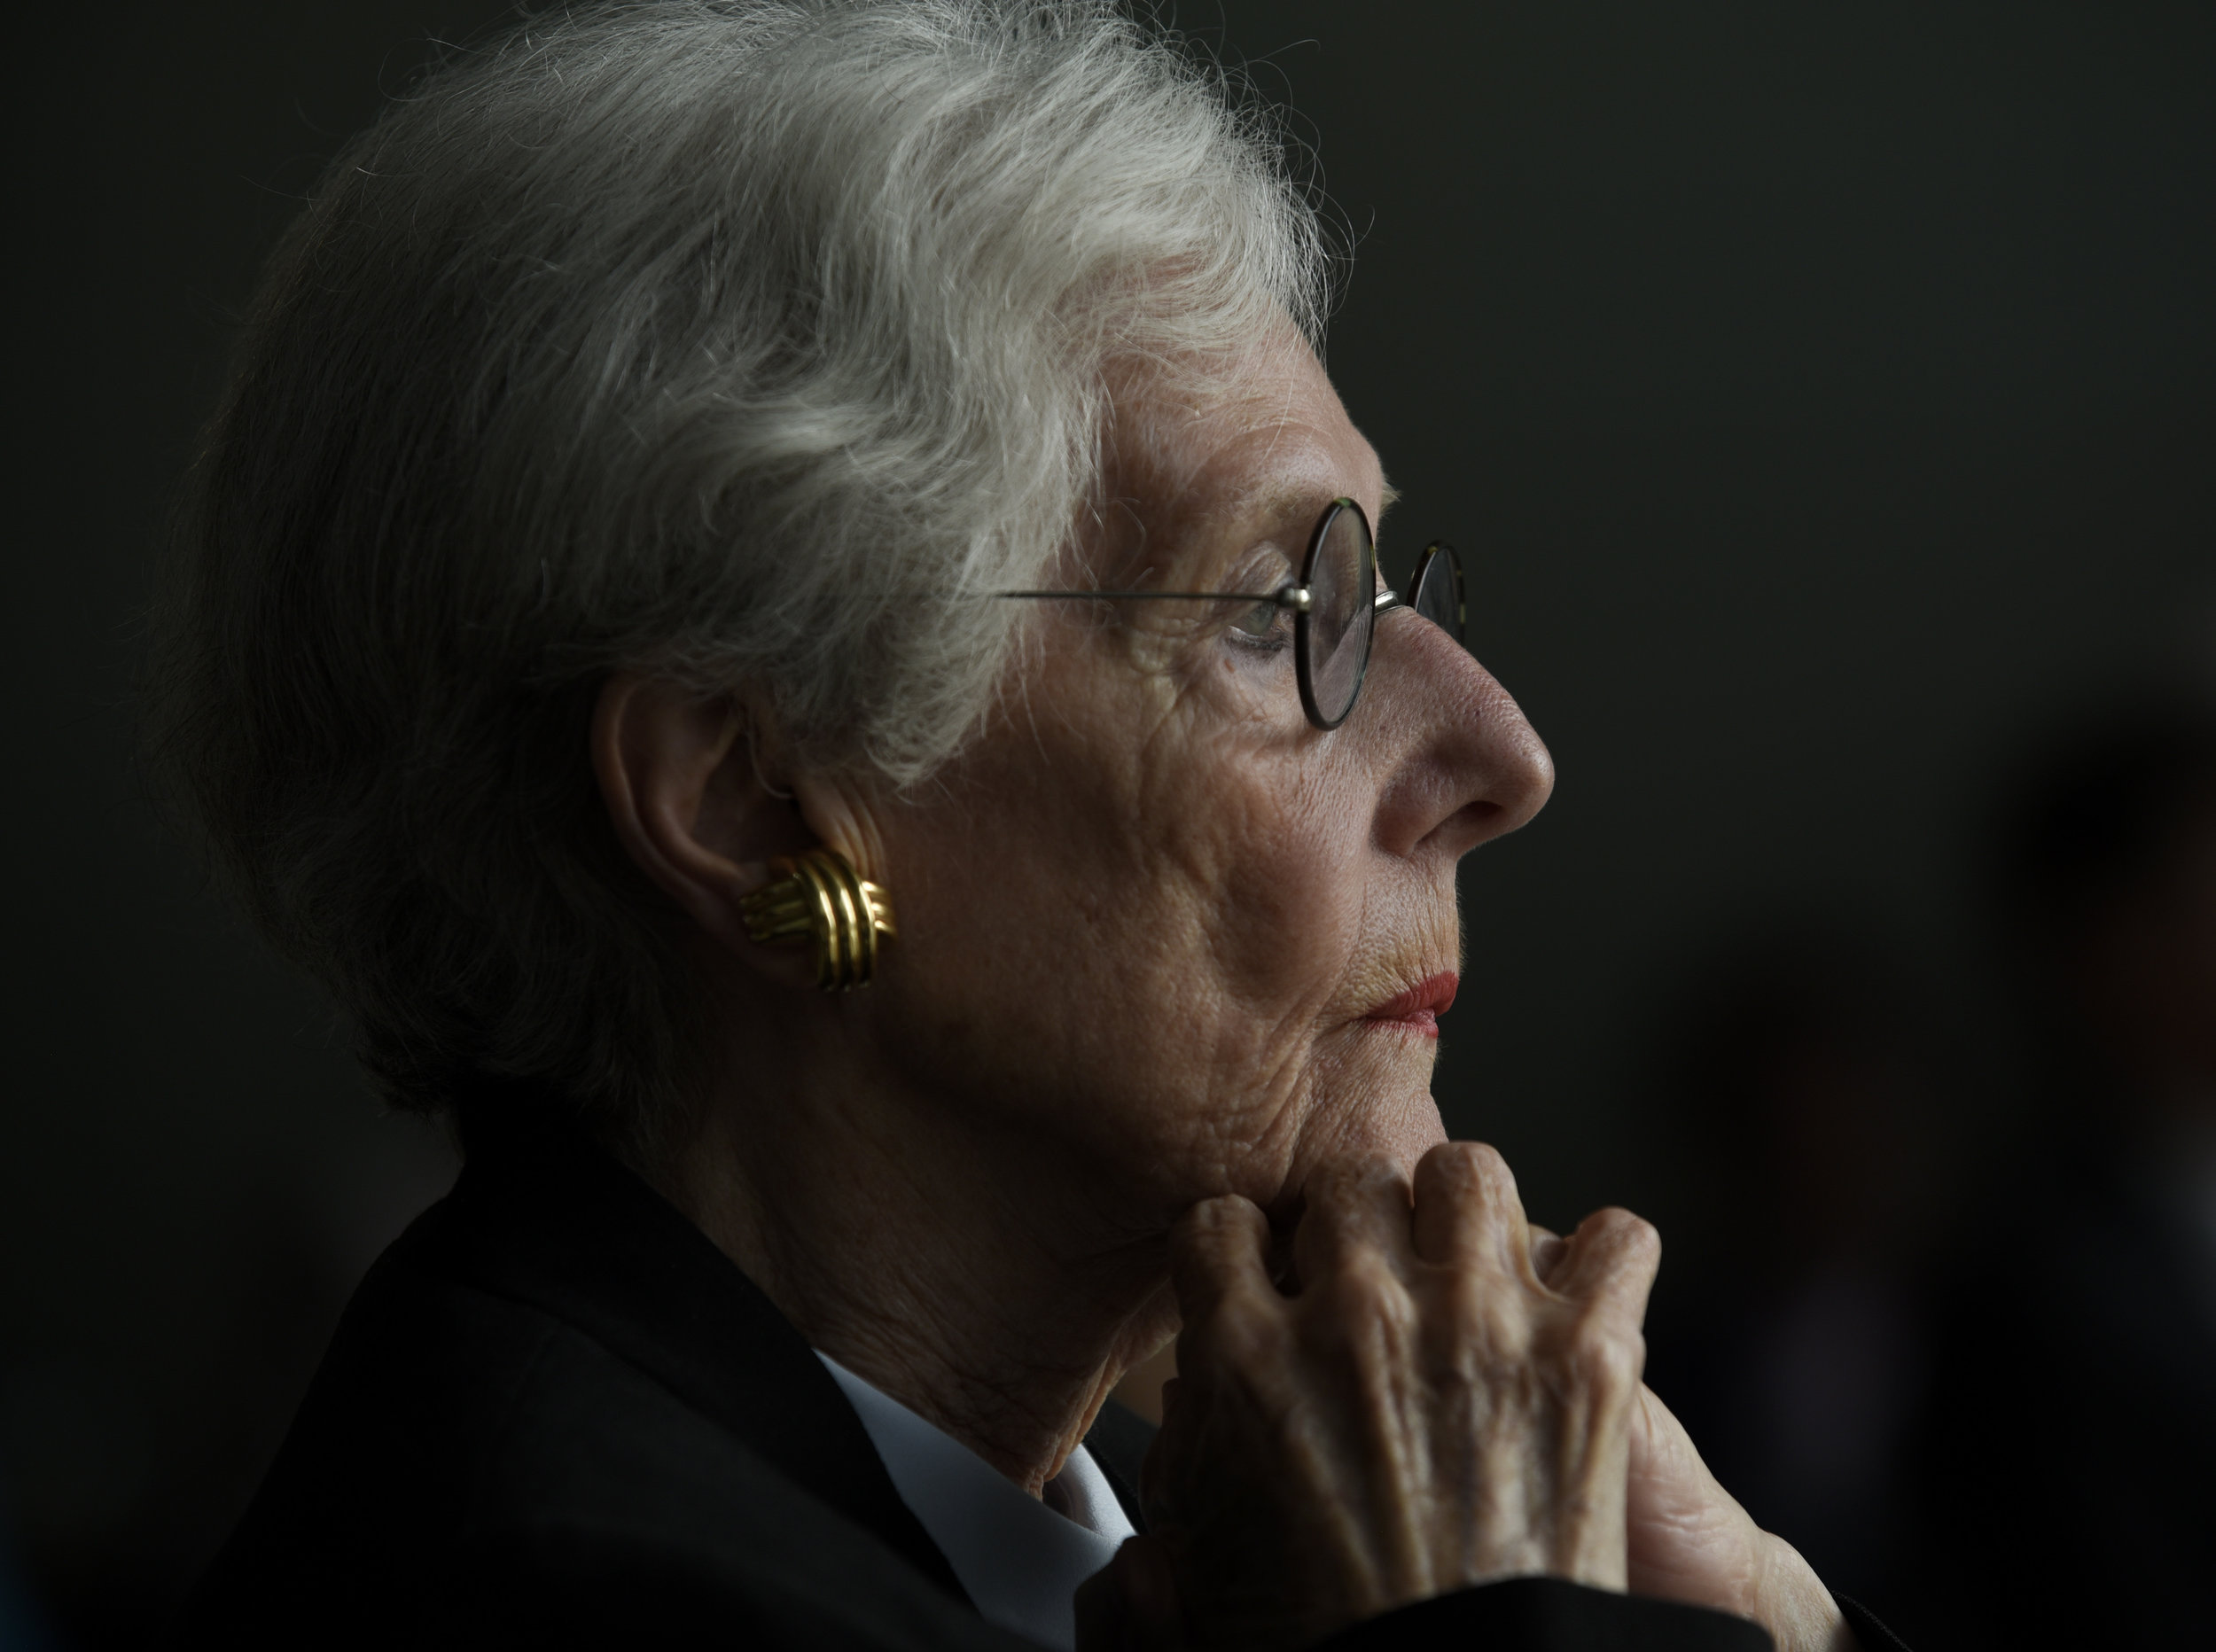 Hillsborough County Clerk of the Circuit Court Pat Frank listens to a speaker during the memorial service for her daughter, well-known Tampa figure Stacy Frank, at the Tampa Museum of Art on July 20, 2016. In June, Stacy passed away after a six-month-long battle with lung cancer.